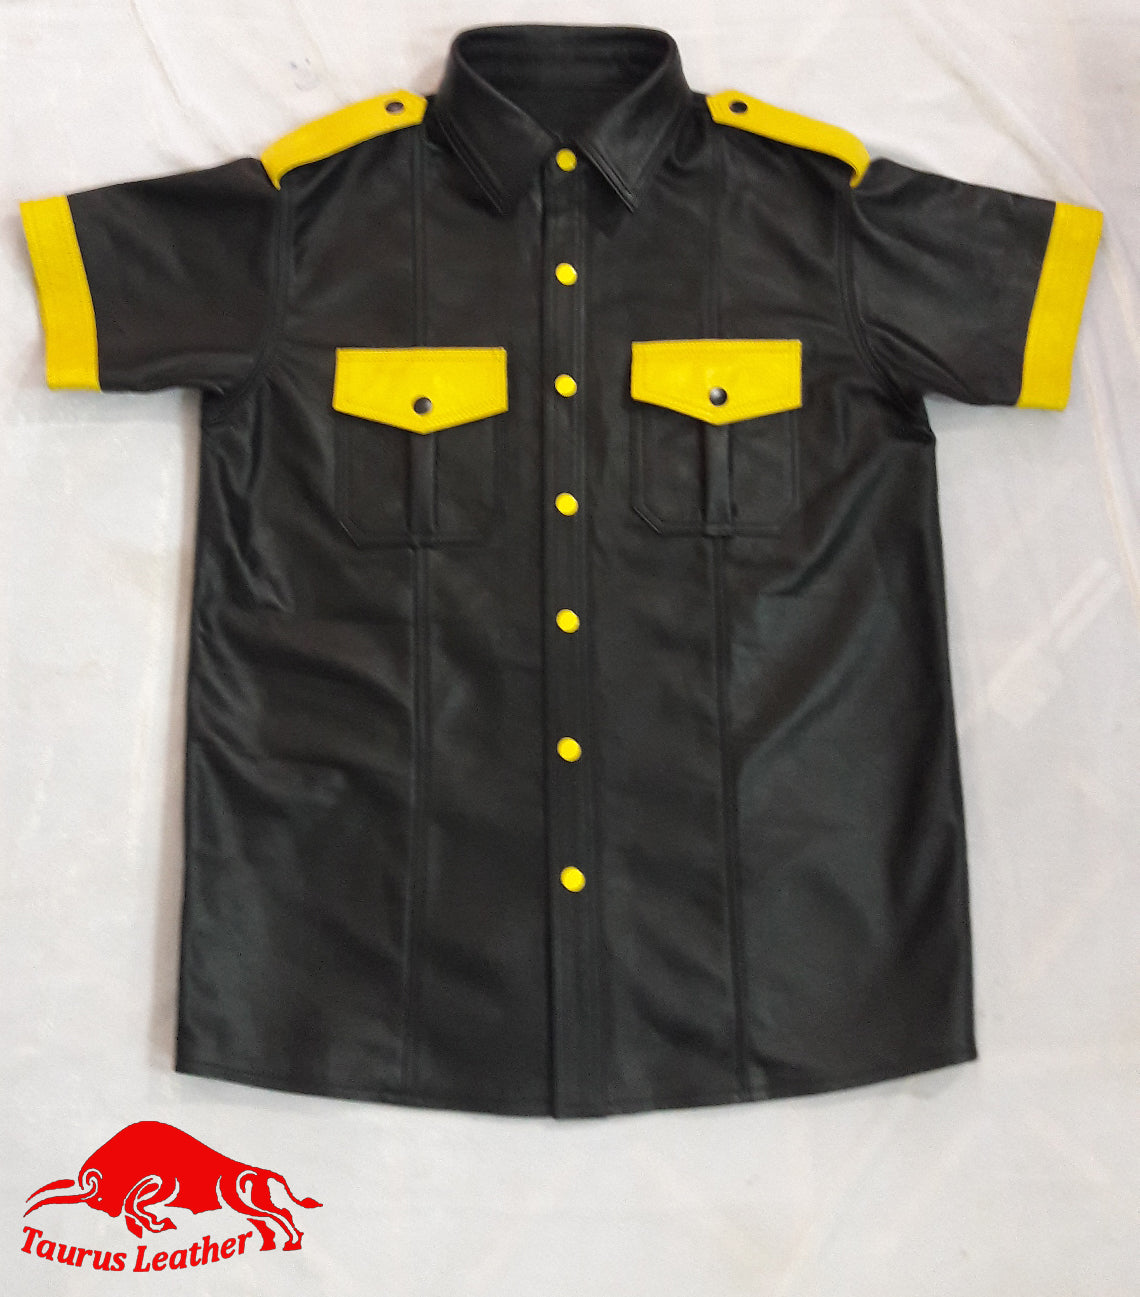 TAURUS LEATHER Black Color Sheep Leather Shirt With Yellow Contrast